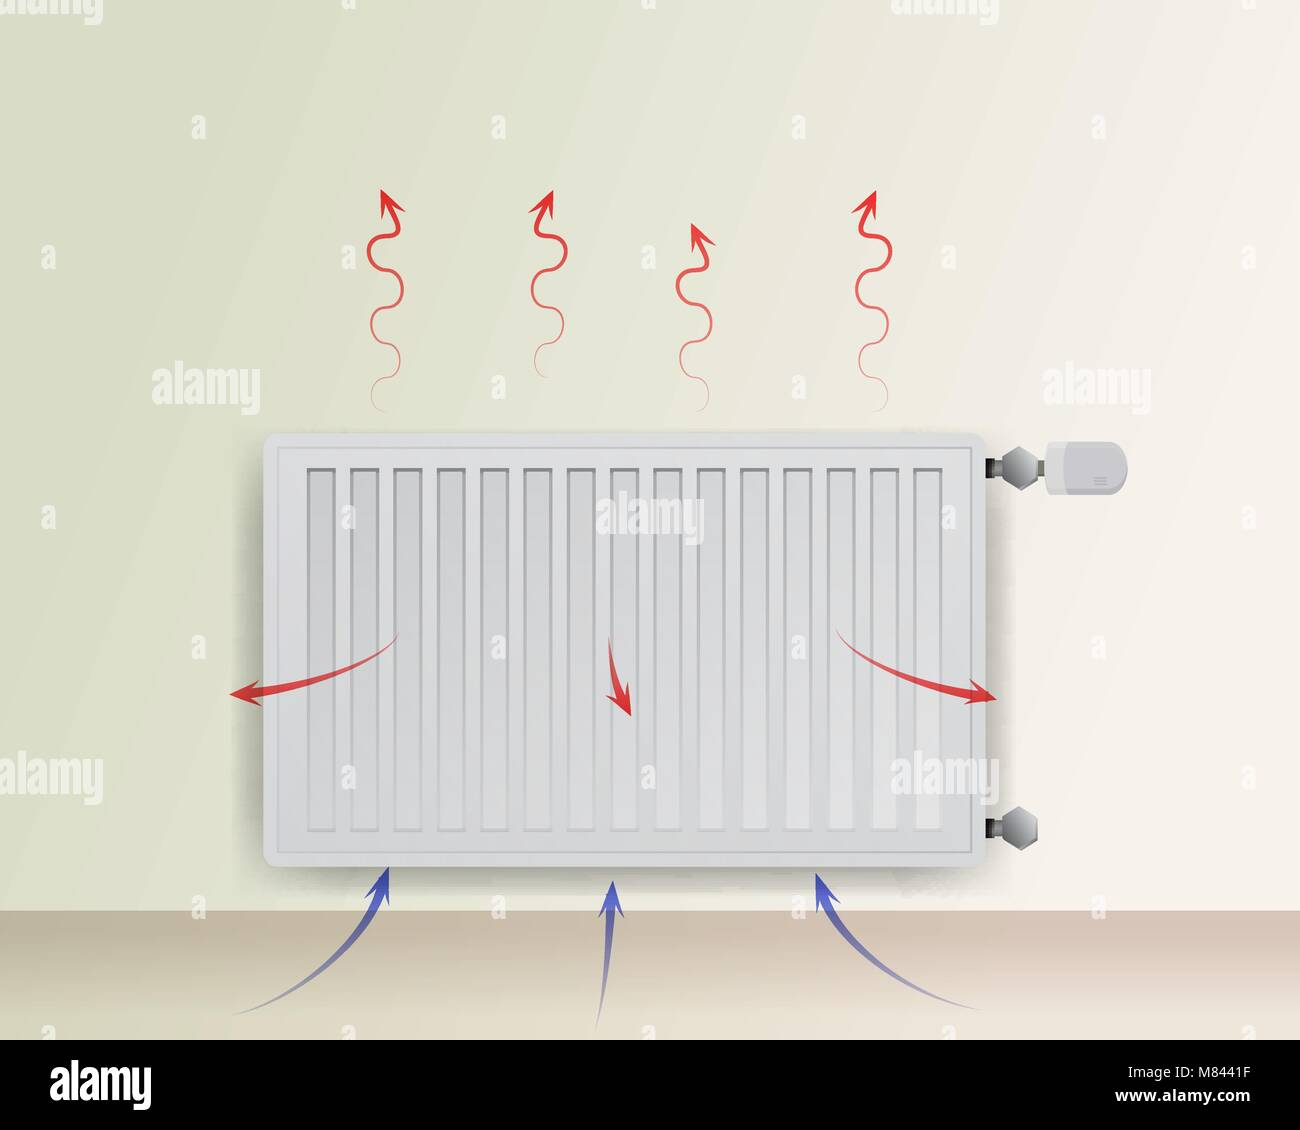 Steel panel radiator in the room vector illustration. The flow of air and heat is depicted blue and red arrows. - Stock Vector